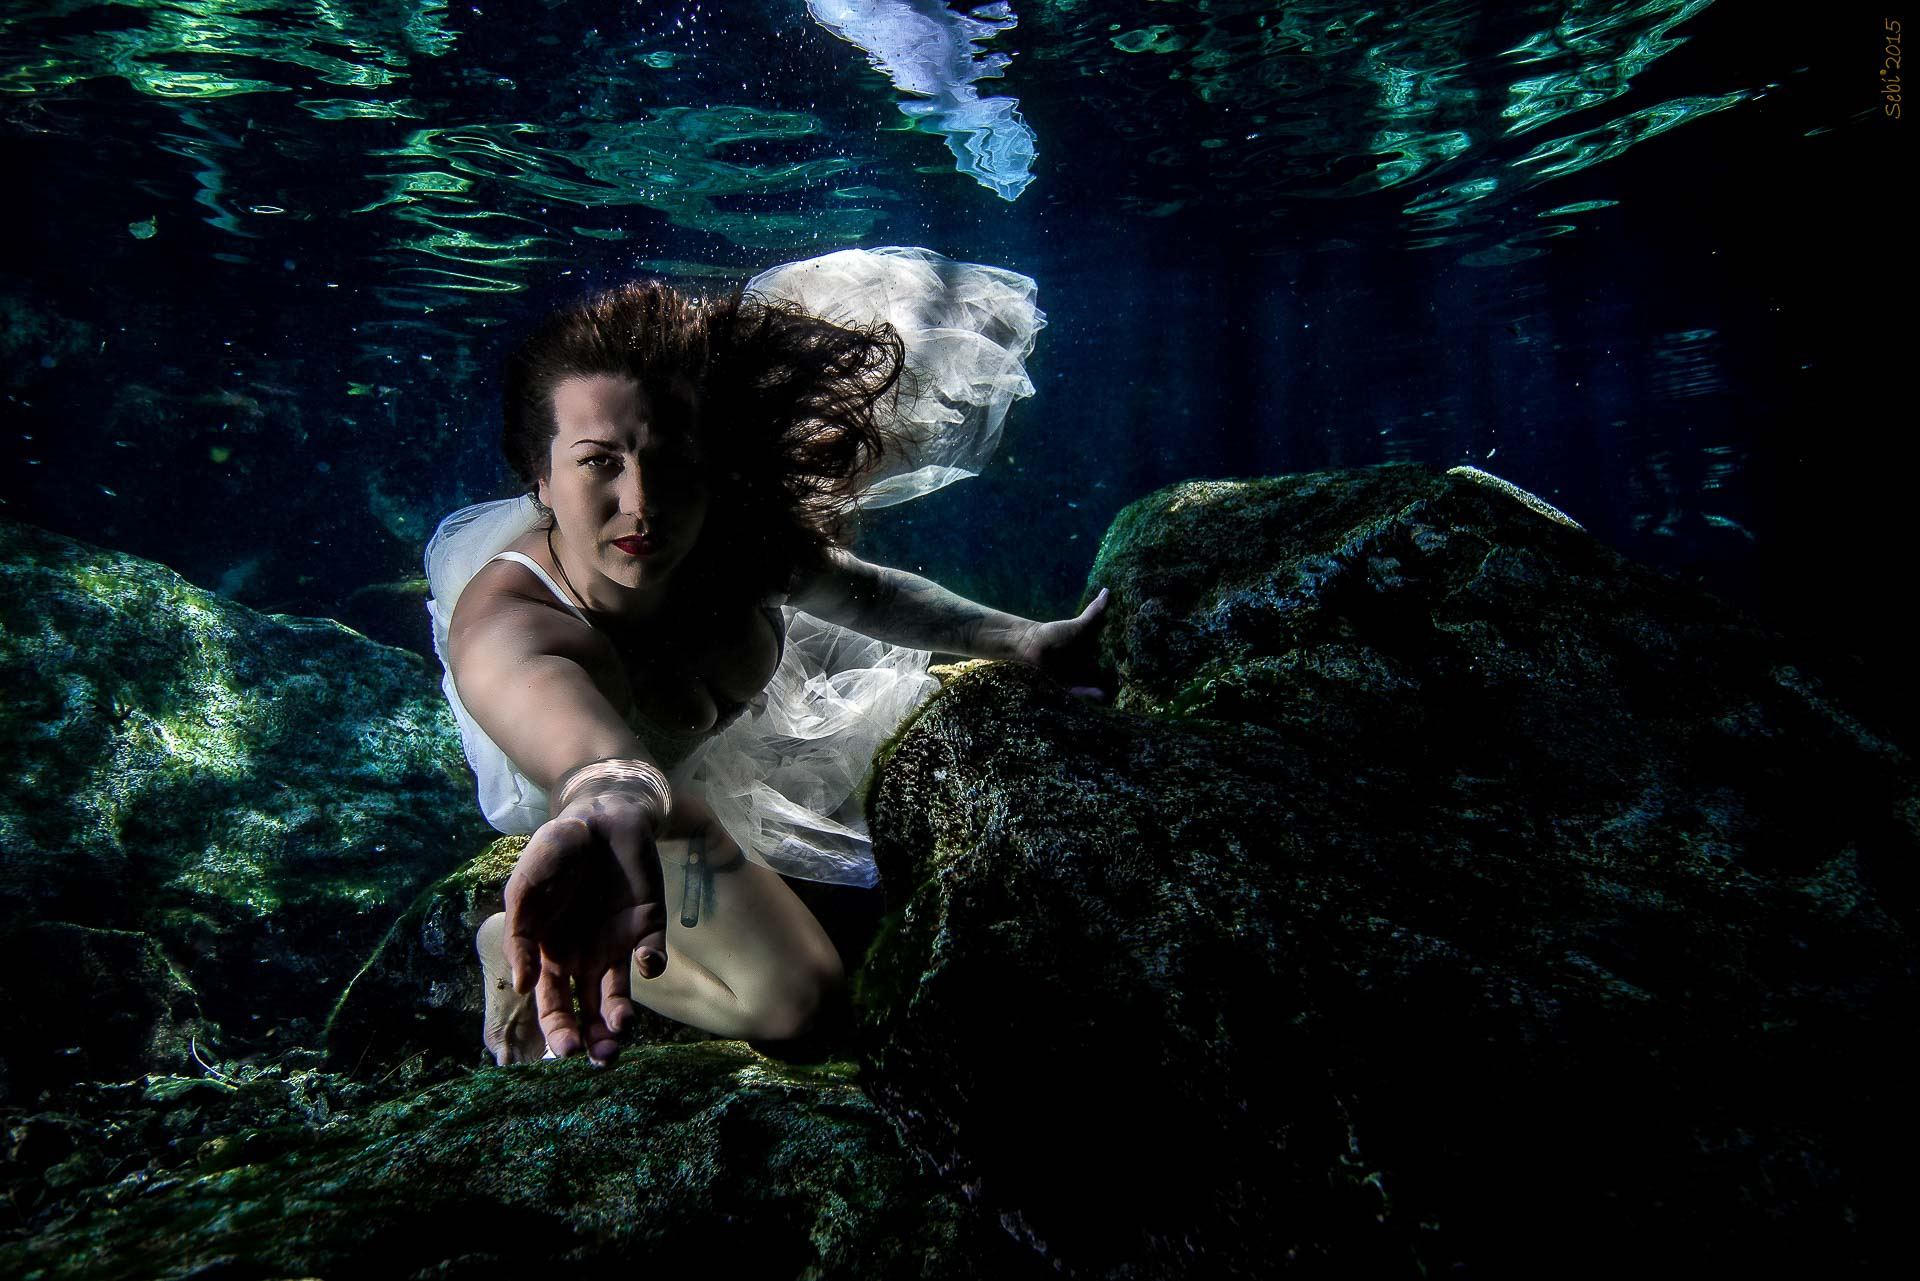 Underwater modelling photography - Cenote session